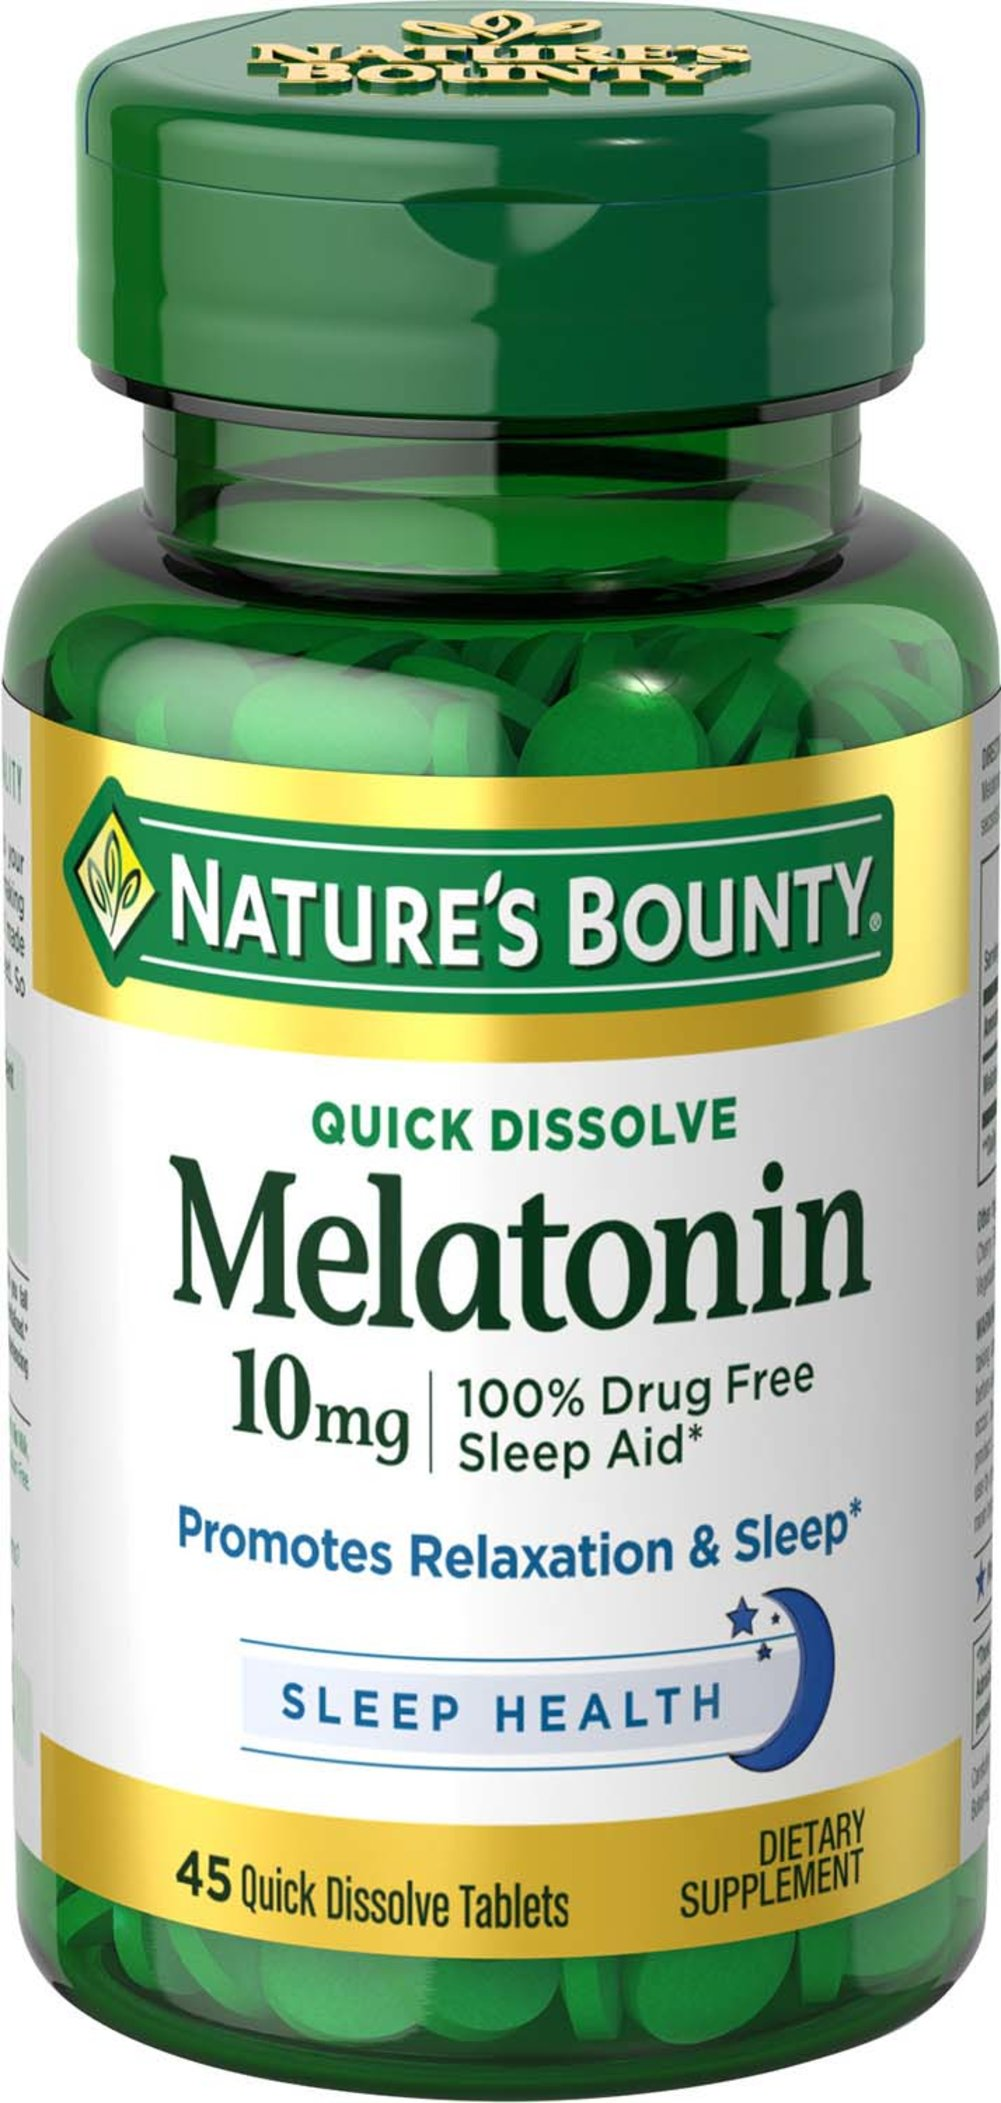 Nature's Bounty® Quick Dissolve Melatonin 10 mg